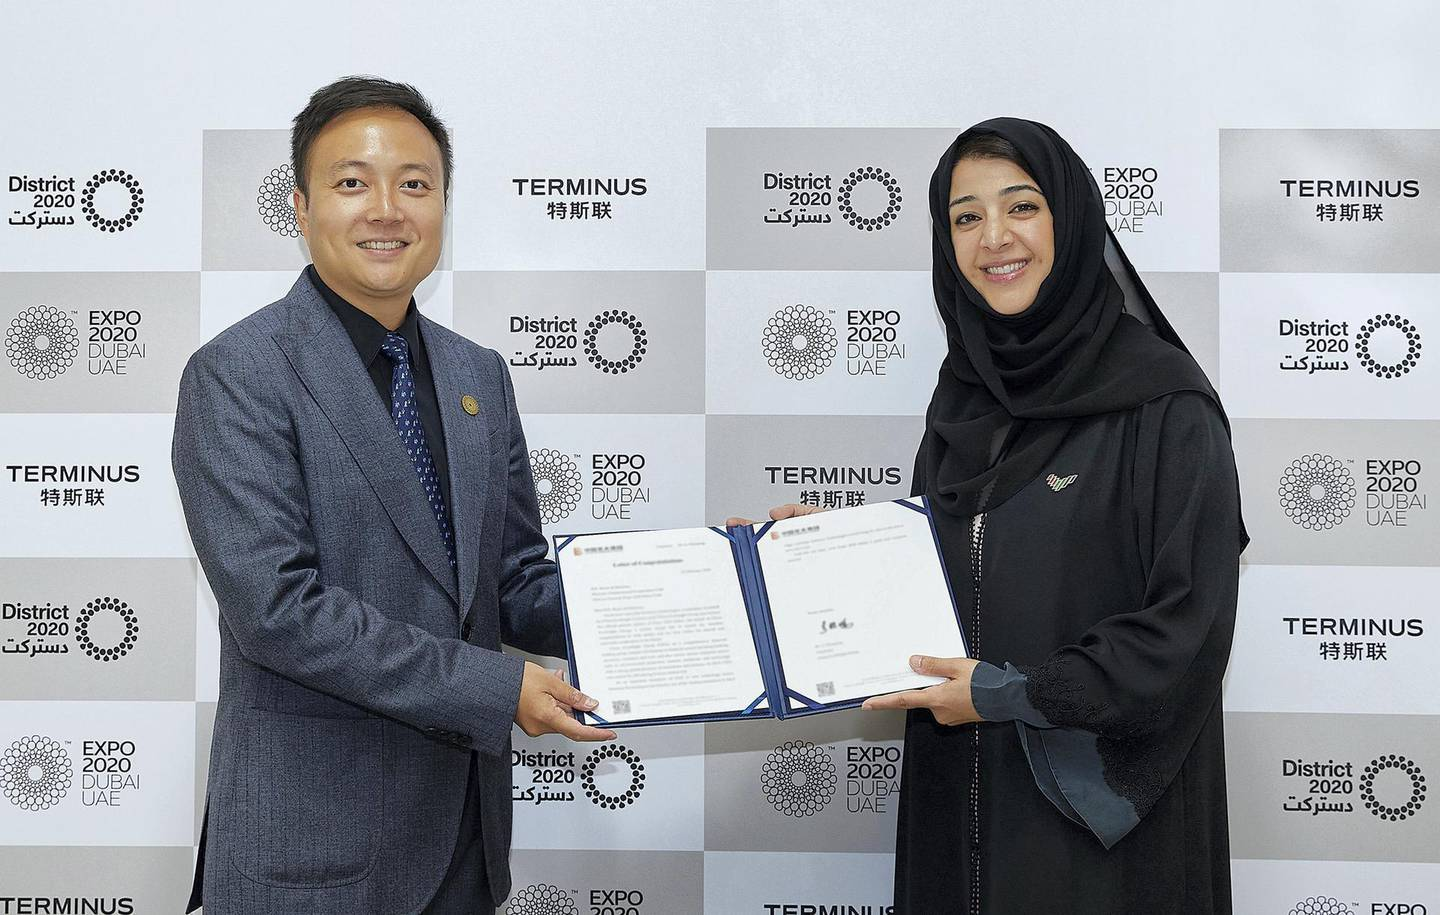 DUBAI, UAE, MARCH 11, 2020 - Her Excellency Reem Al Hashimy UAE Minister of State for International Cooperation; Director General, Dubai Expo 2020 Bureau attends the signing Jeremy with Victor Al Founder & CEO of Terminus at District 2020 (Photo by Suneesh Sudhakaran/Expo 2020)